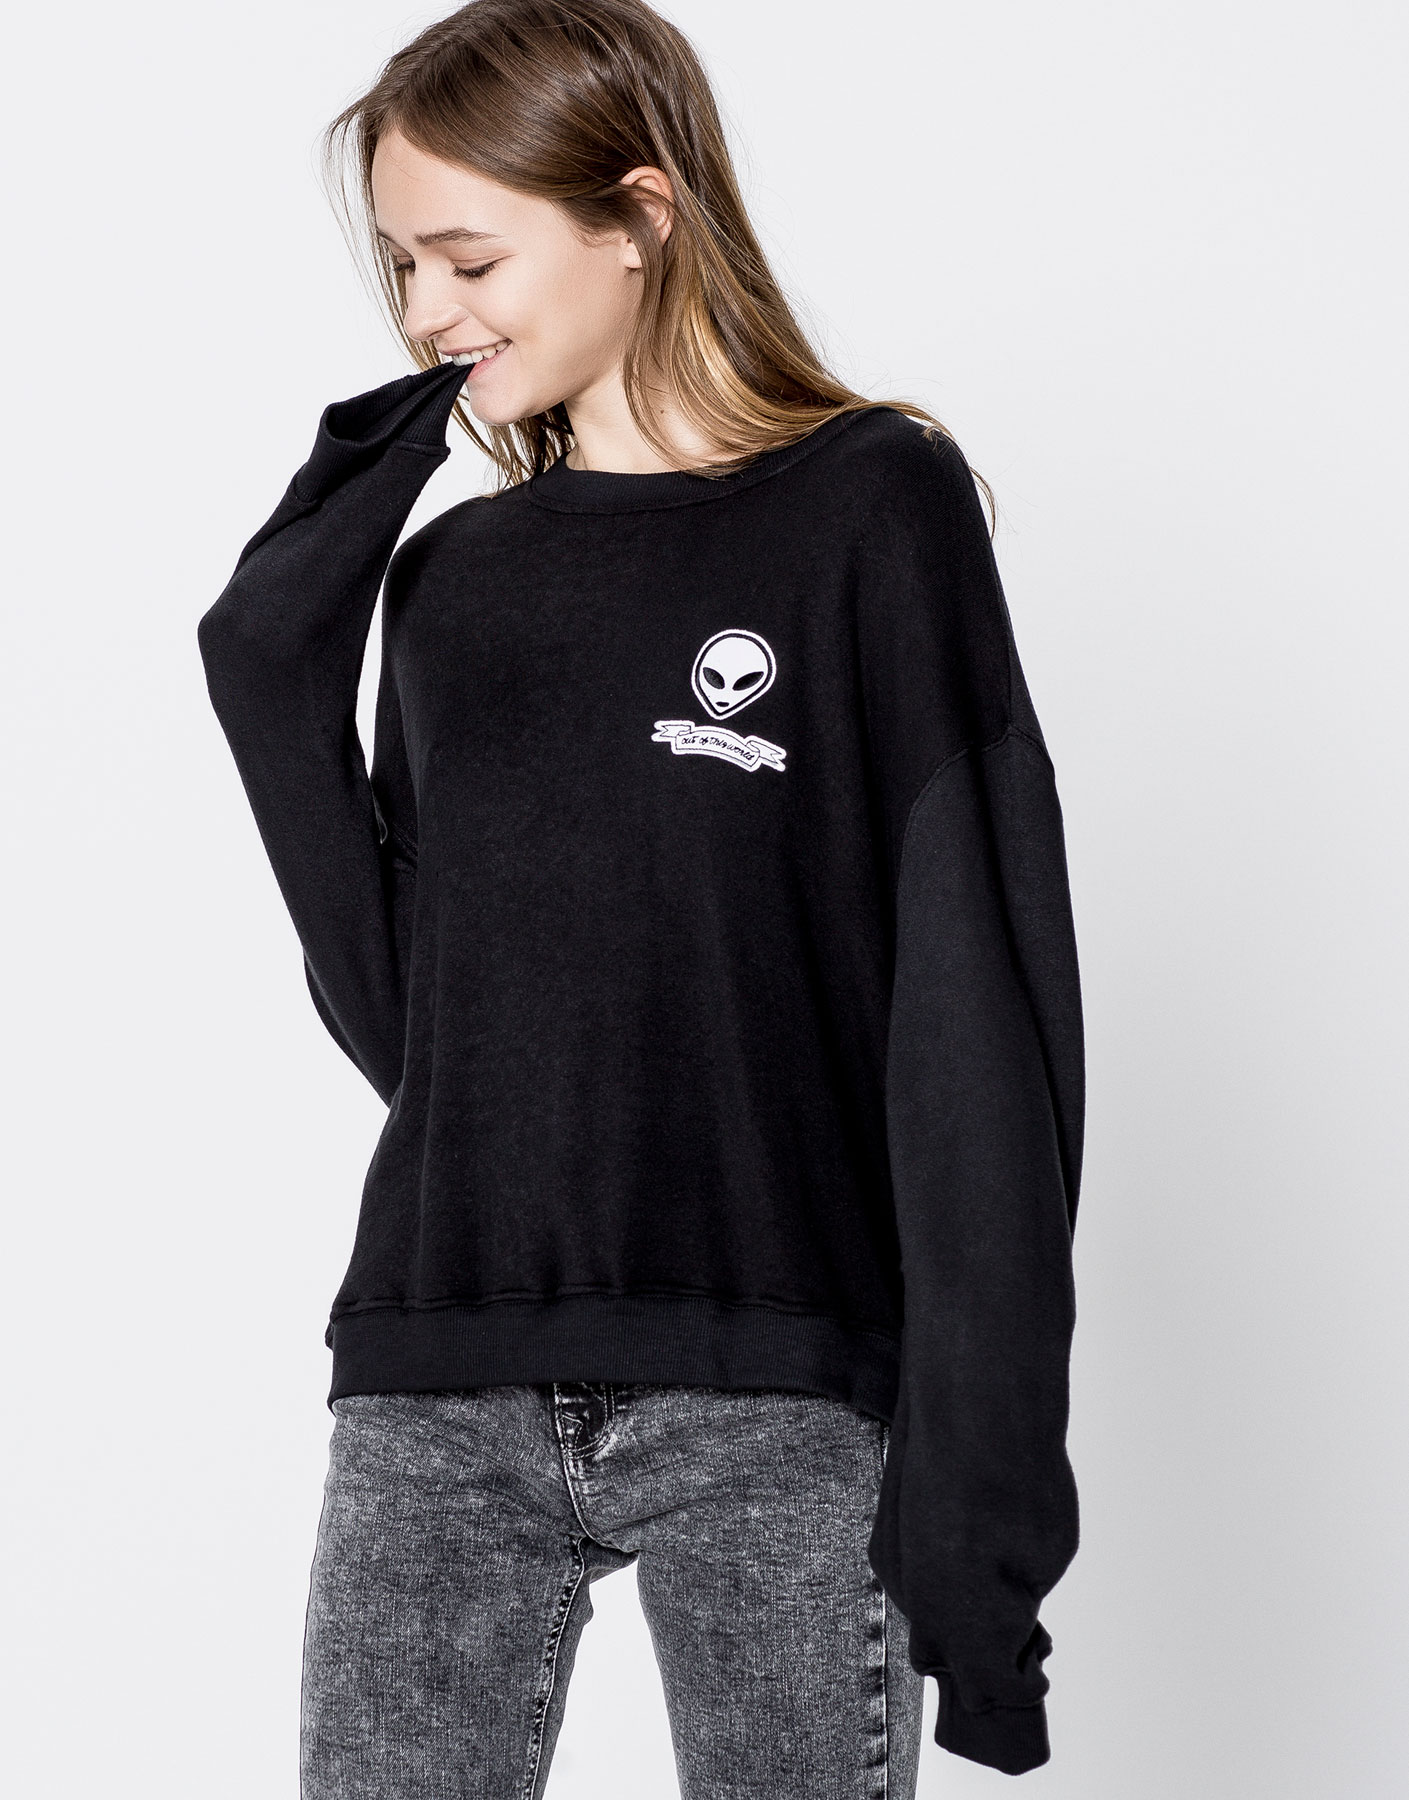 Sweatshirt met alienpatch